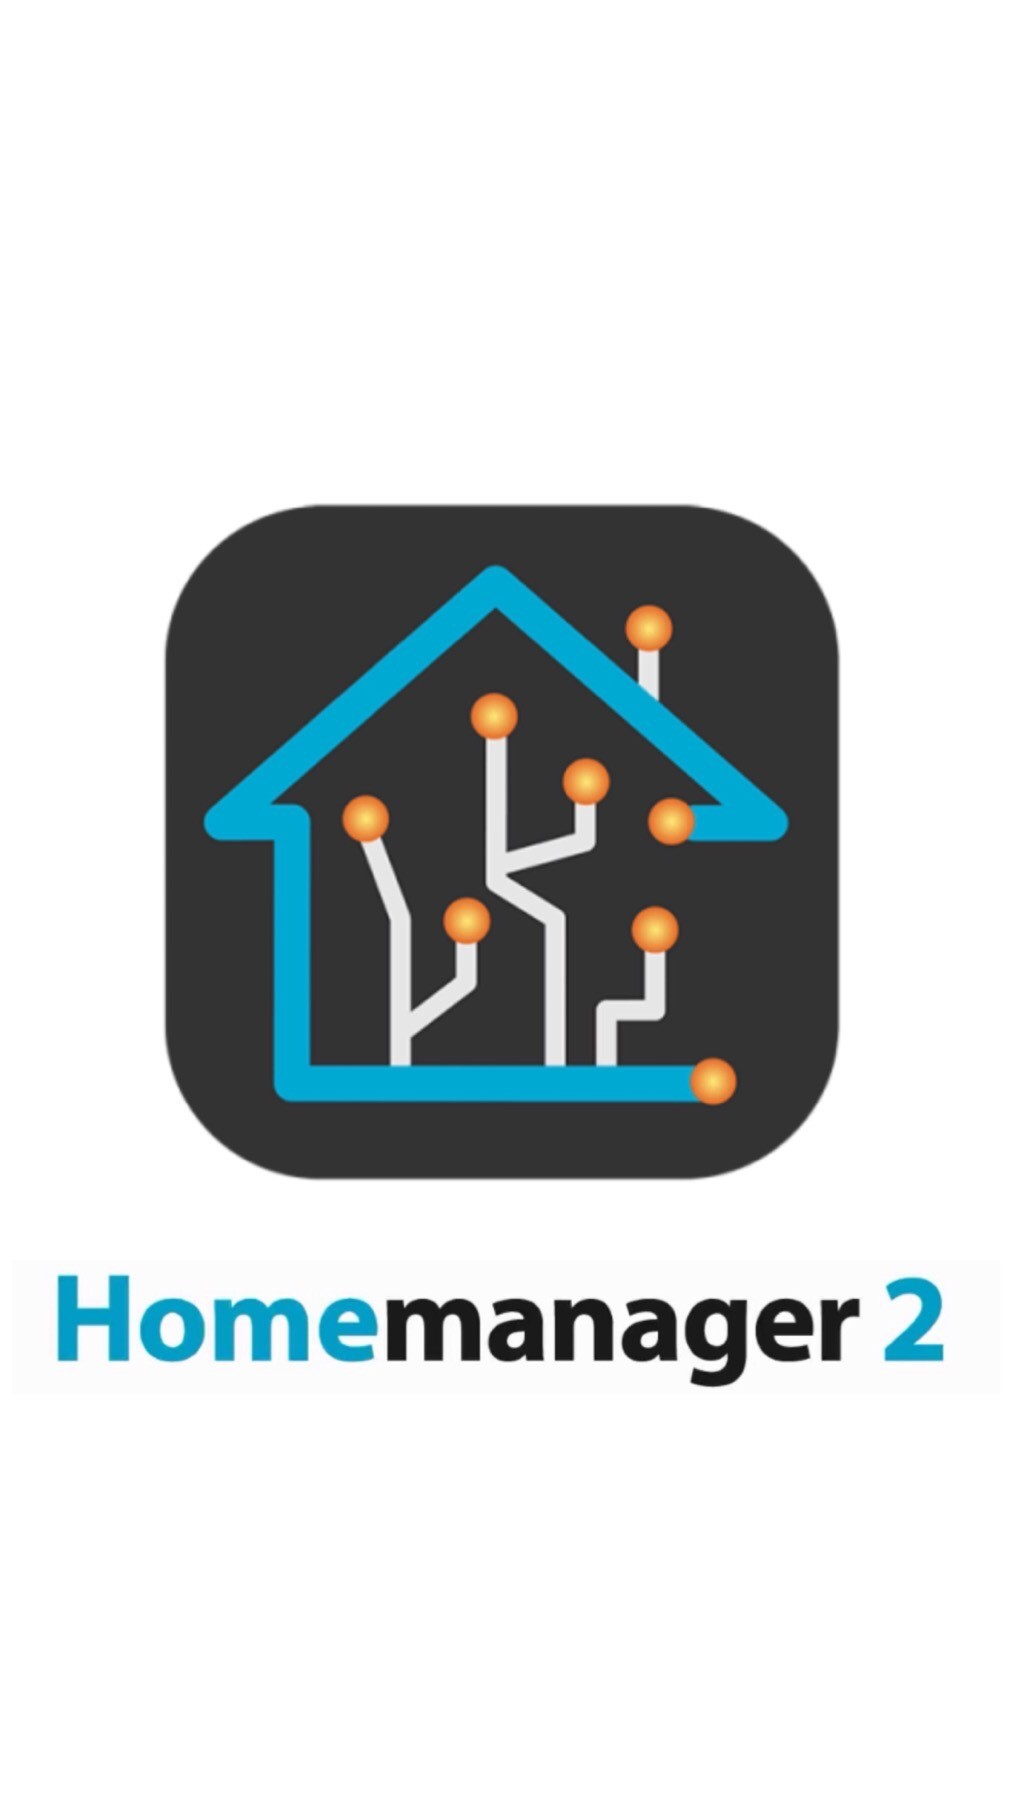 Set Up and Manage Homebridge Right from Your iPhone or iPad with the Homemanager App and HOOBS